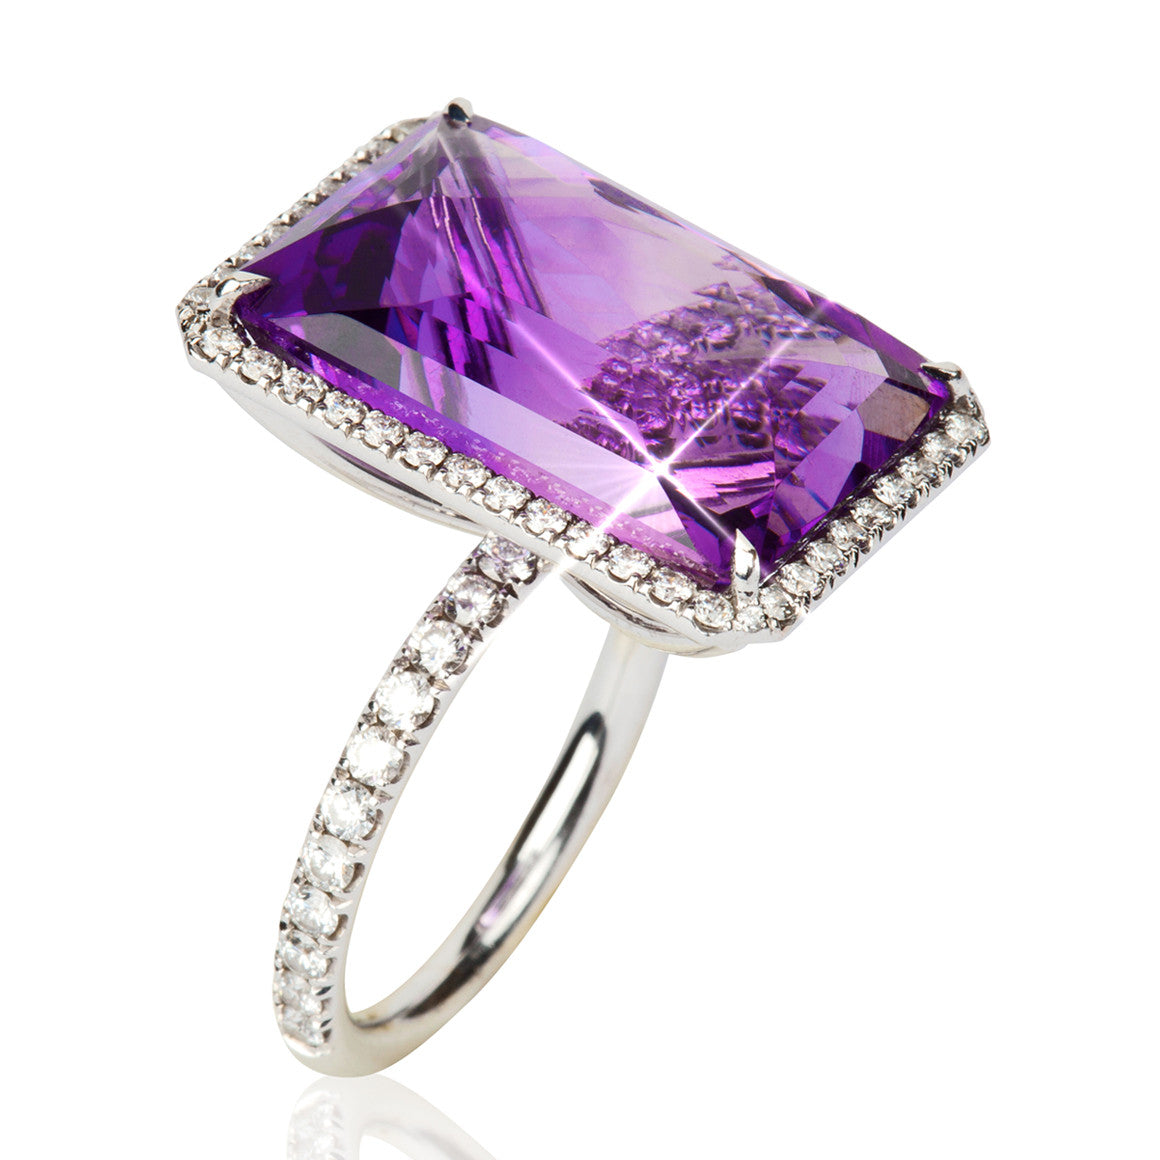 editor mappin about purple birthstone truth bridal amethyst the false hard crop guide prima engagement upscale webb how rings subsampling jewellery know ring scale